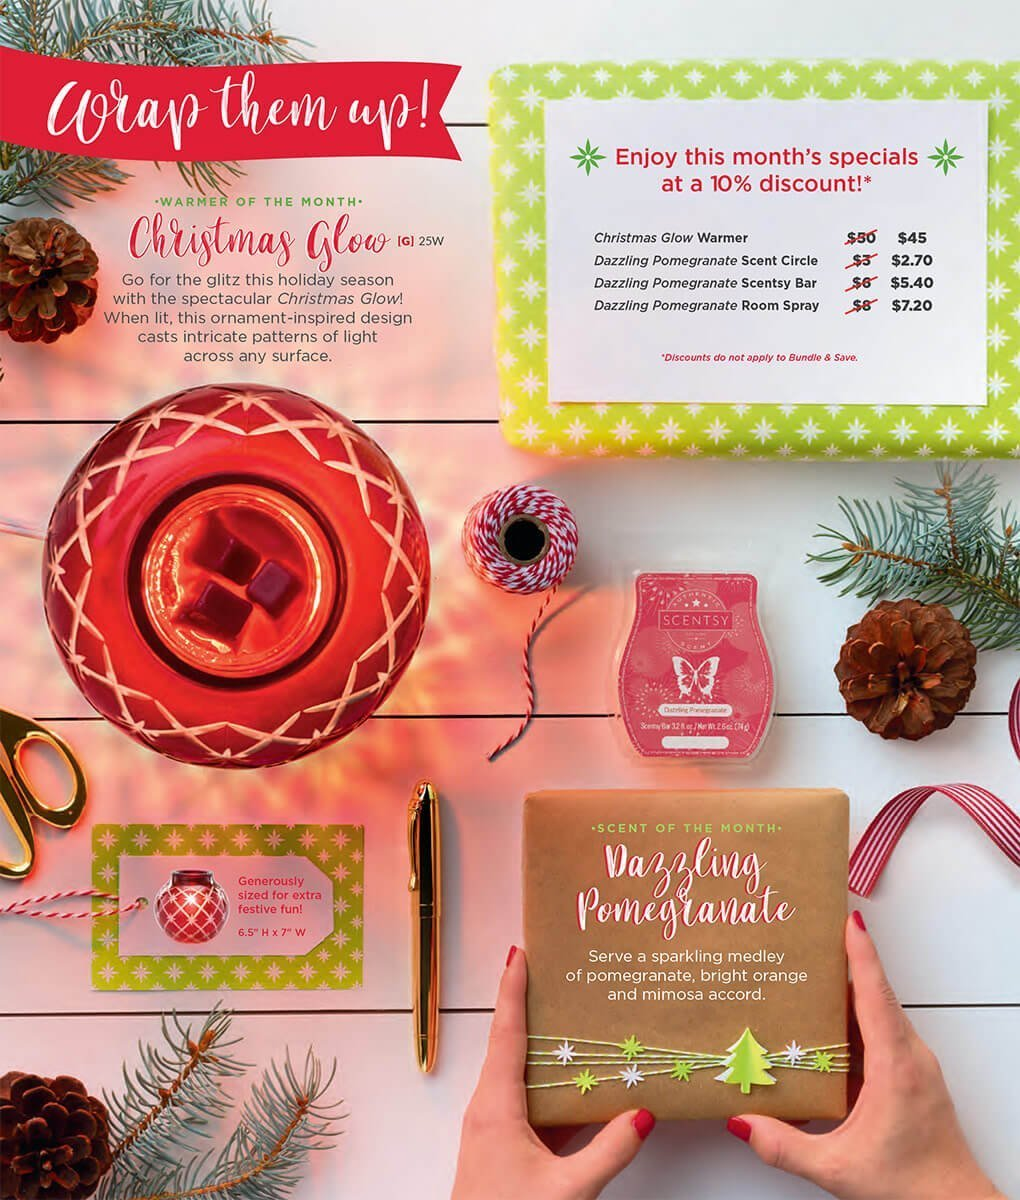 Christmas Glow & Dazzling Pomegranate, Scentsy Warmer and Scent of the Month November 2017